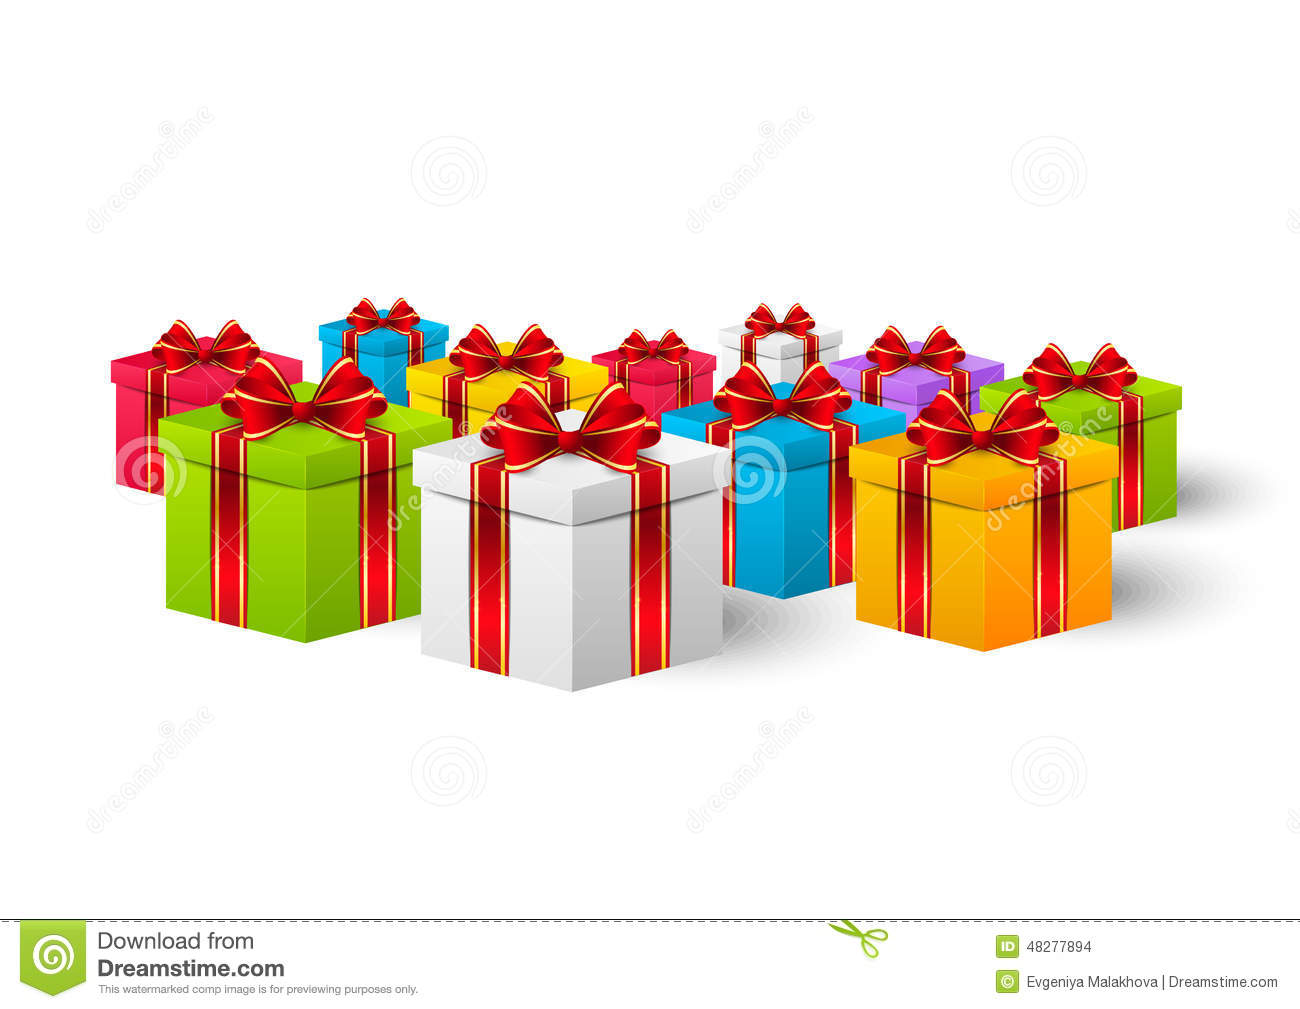 Color holiday gift boxes stock vector. Image of holiday - 48277894